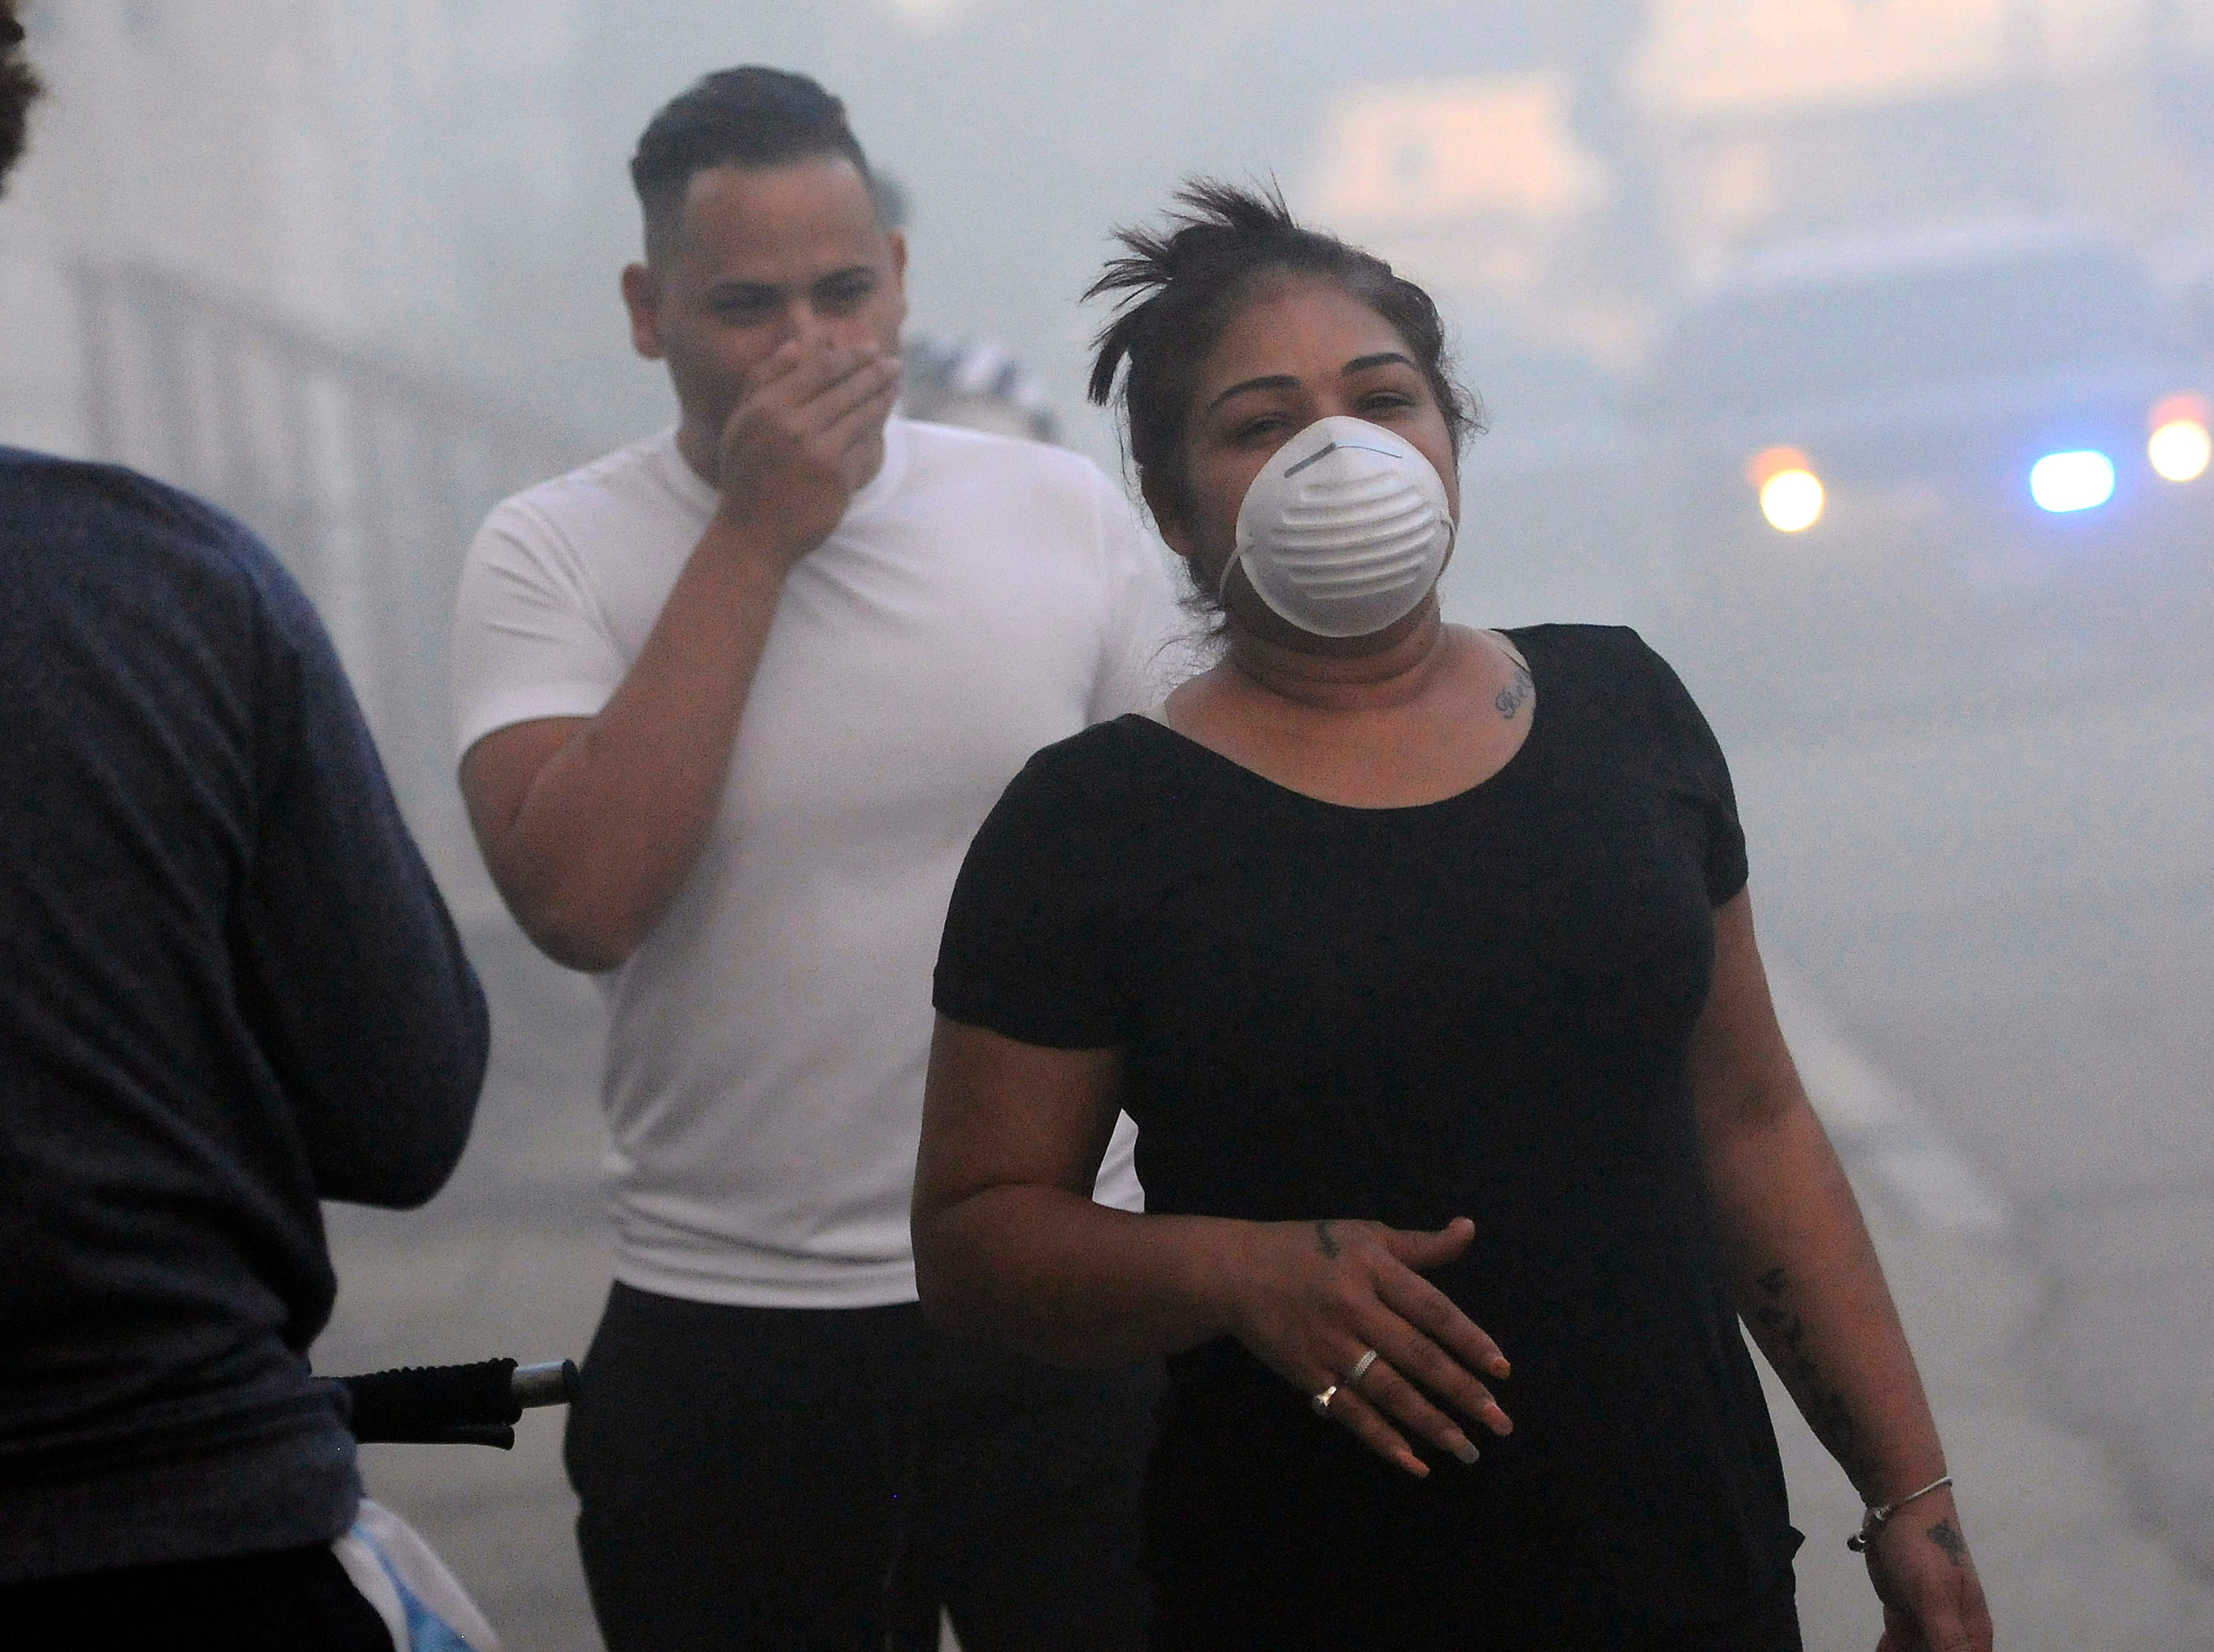 Residents cover their face from the smoke while being evacuated from homes as firefighters battle a fire on Bowdoin St., Thursday, Sept. 13, 2018 in Lawrence., Mass. A problem with a gas line that feeds homes in several communities north of Boston triggered a series of gas explosions and fires.